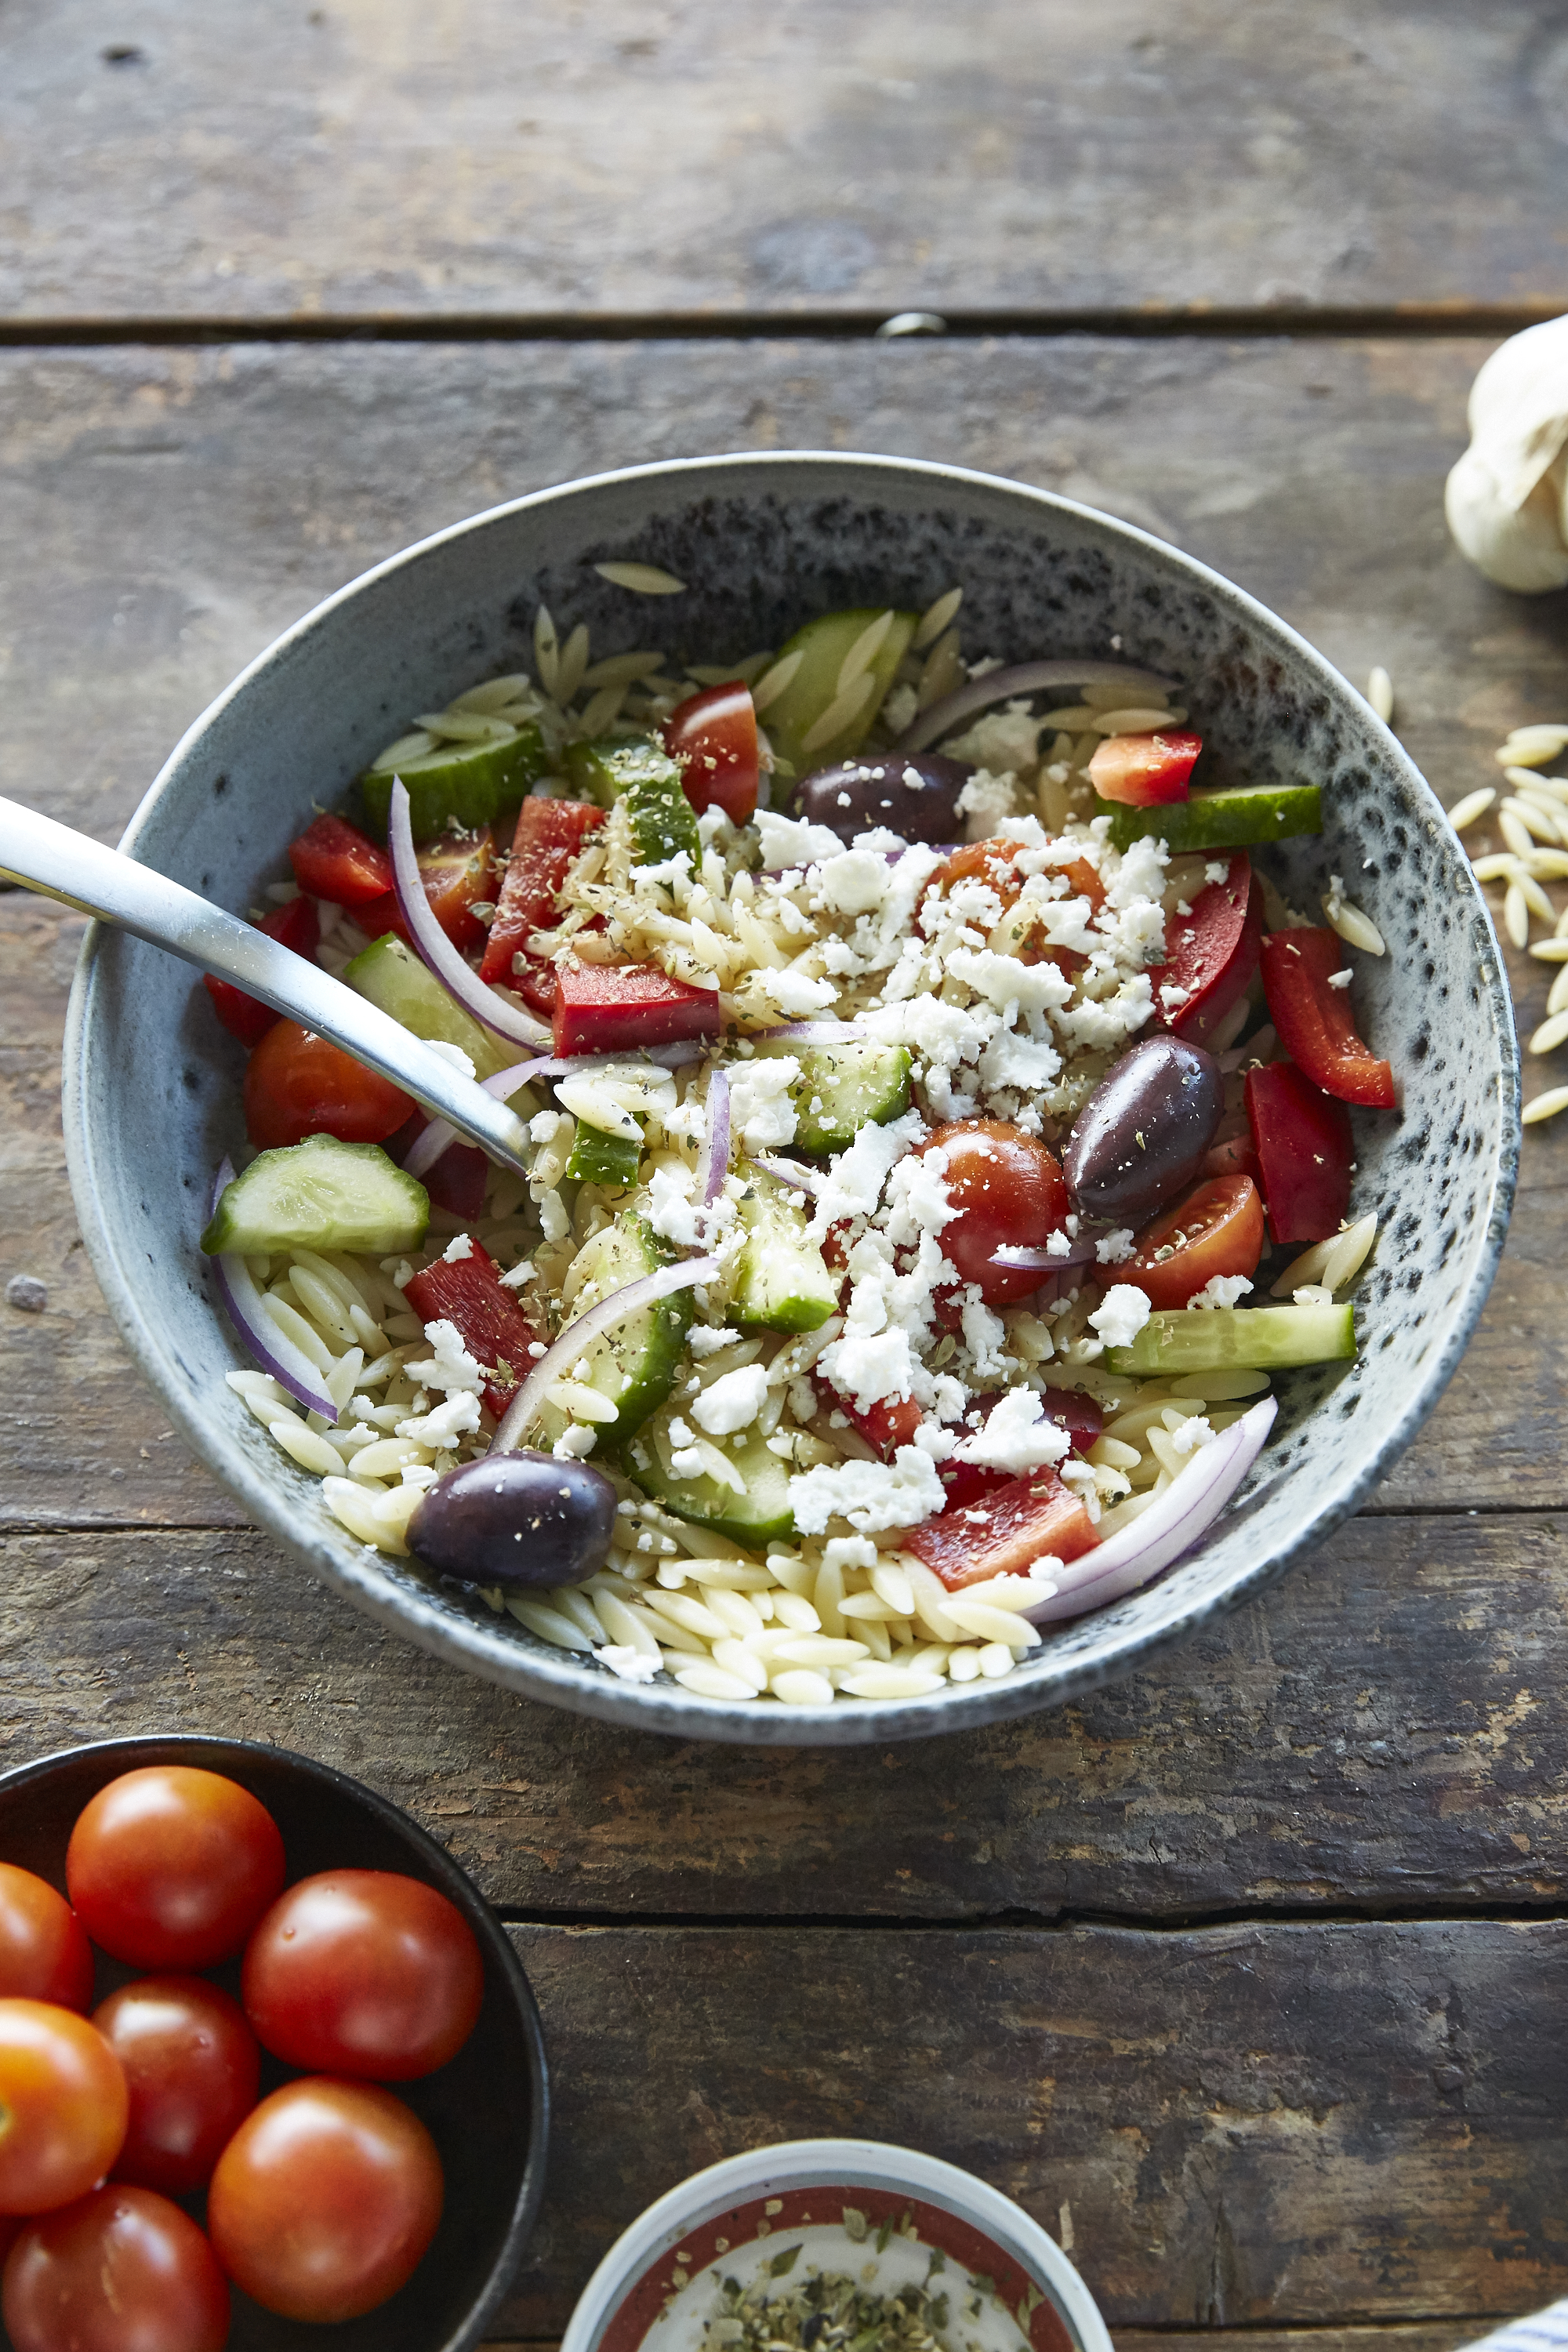 Mitsides - Lemon-Rocket Salad, Coconut Cake, Greek Orzo Salad CTO - Cypriot Delight2D4A7621 1